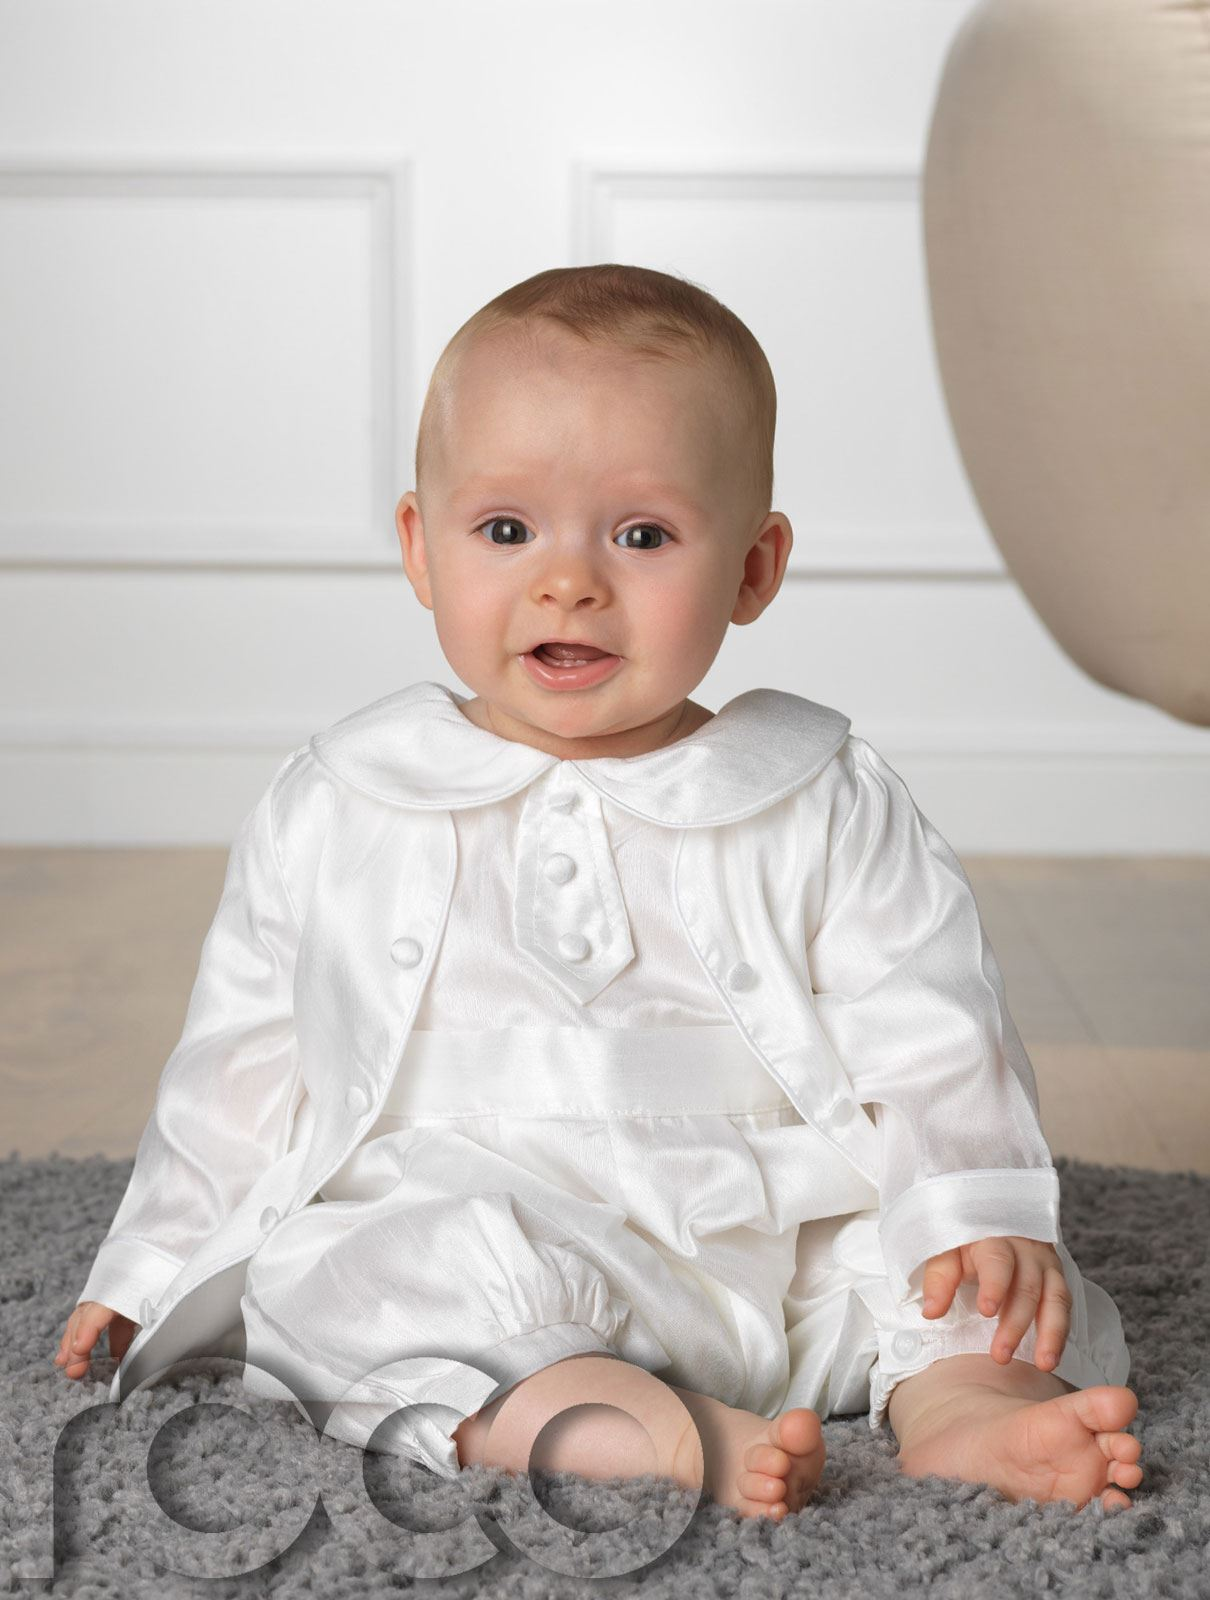 Supercrafted with the softest, most comfortable organic cotton, Hanna Andersson's rompers for baby boys are essential for any little guy's wardrobe.